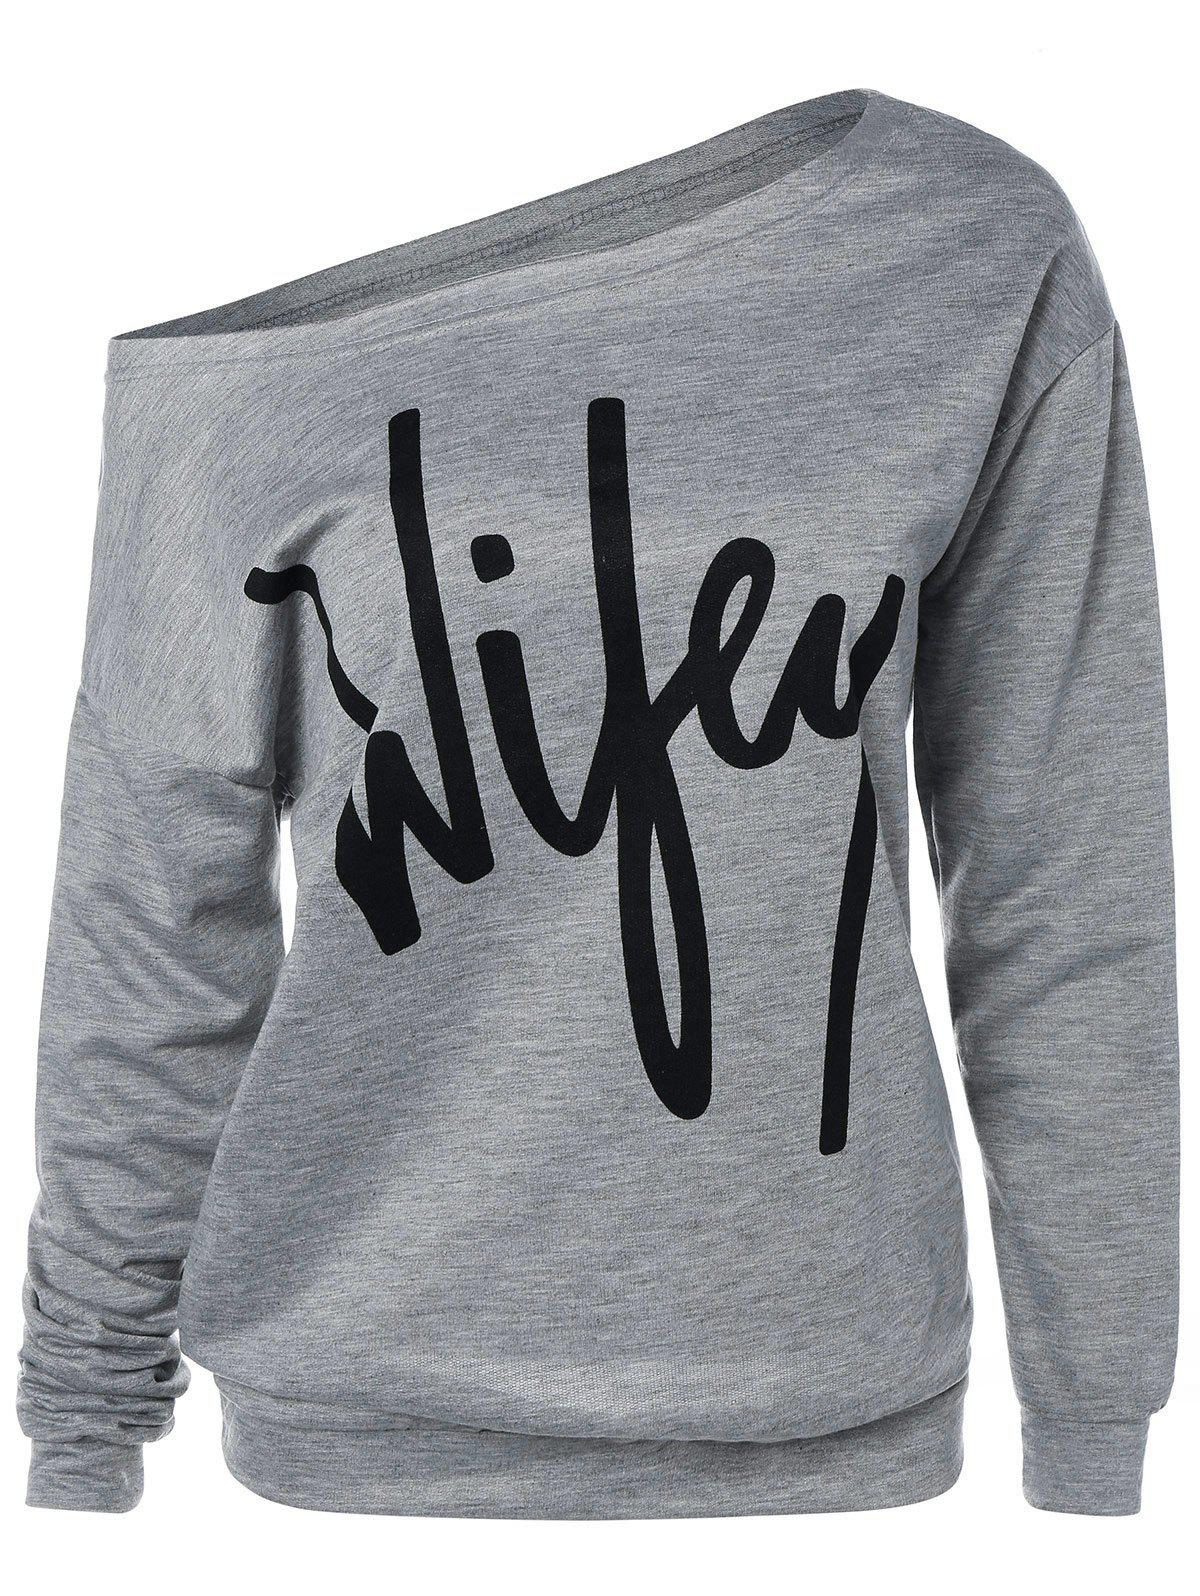 Wifey Print Skew Neck SweatshirtWOMEN<br><br>Size: L; Color: GRAY; Material: Polyester; Shirt Length: Regular; Sleeve Length: Full; Style: Fashion; Pattern Style: Letter; Season: Fall,Spring; Weight: 0.2250kg; Package Contents: 1 x Sweatshirt;